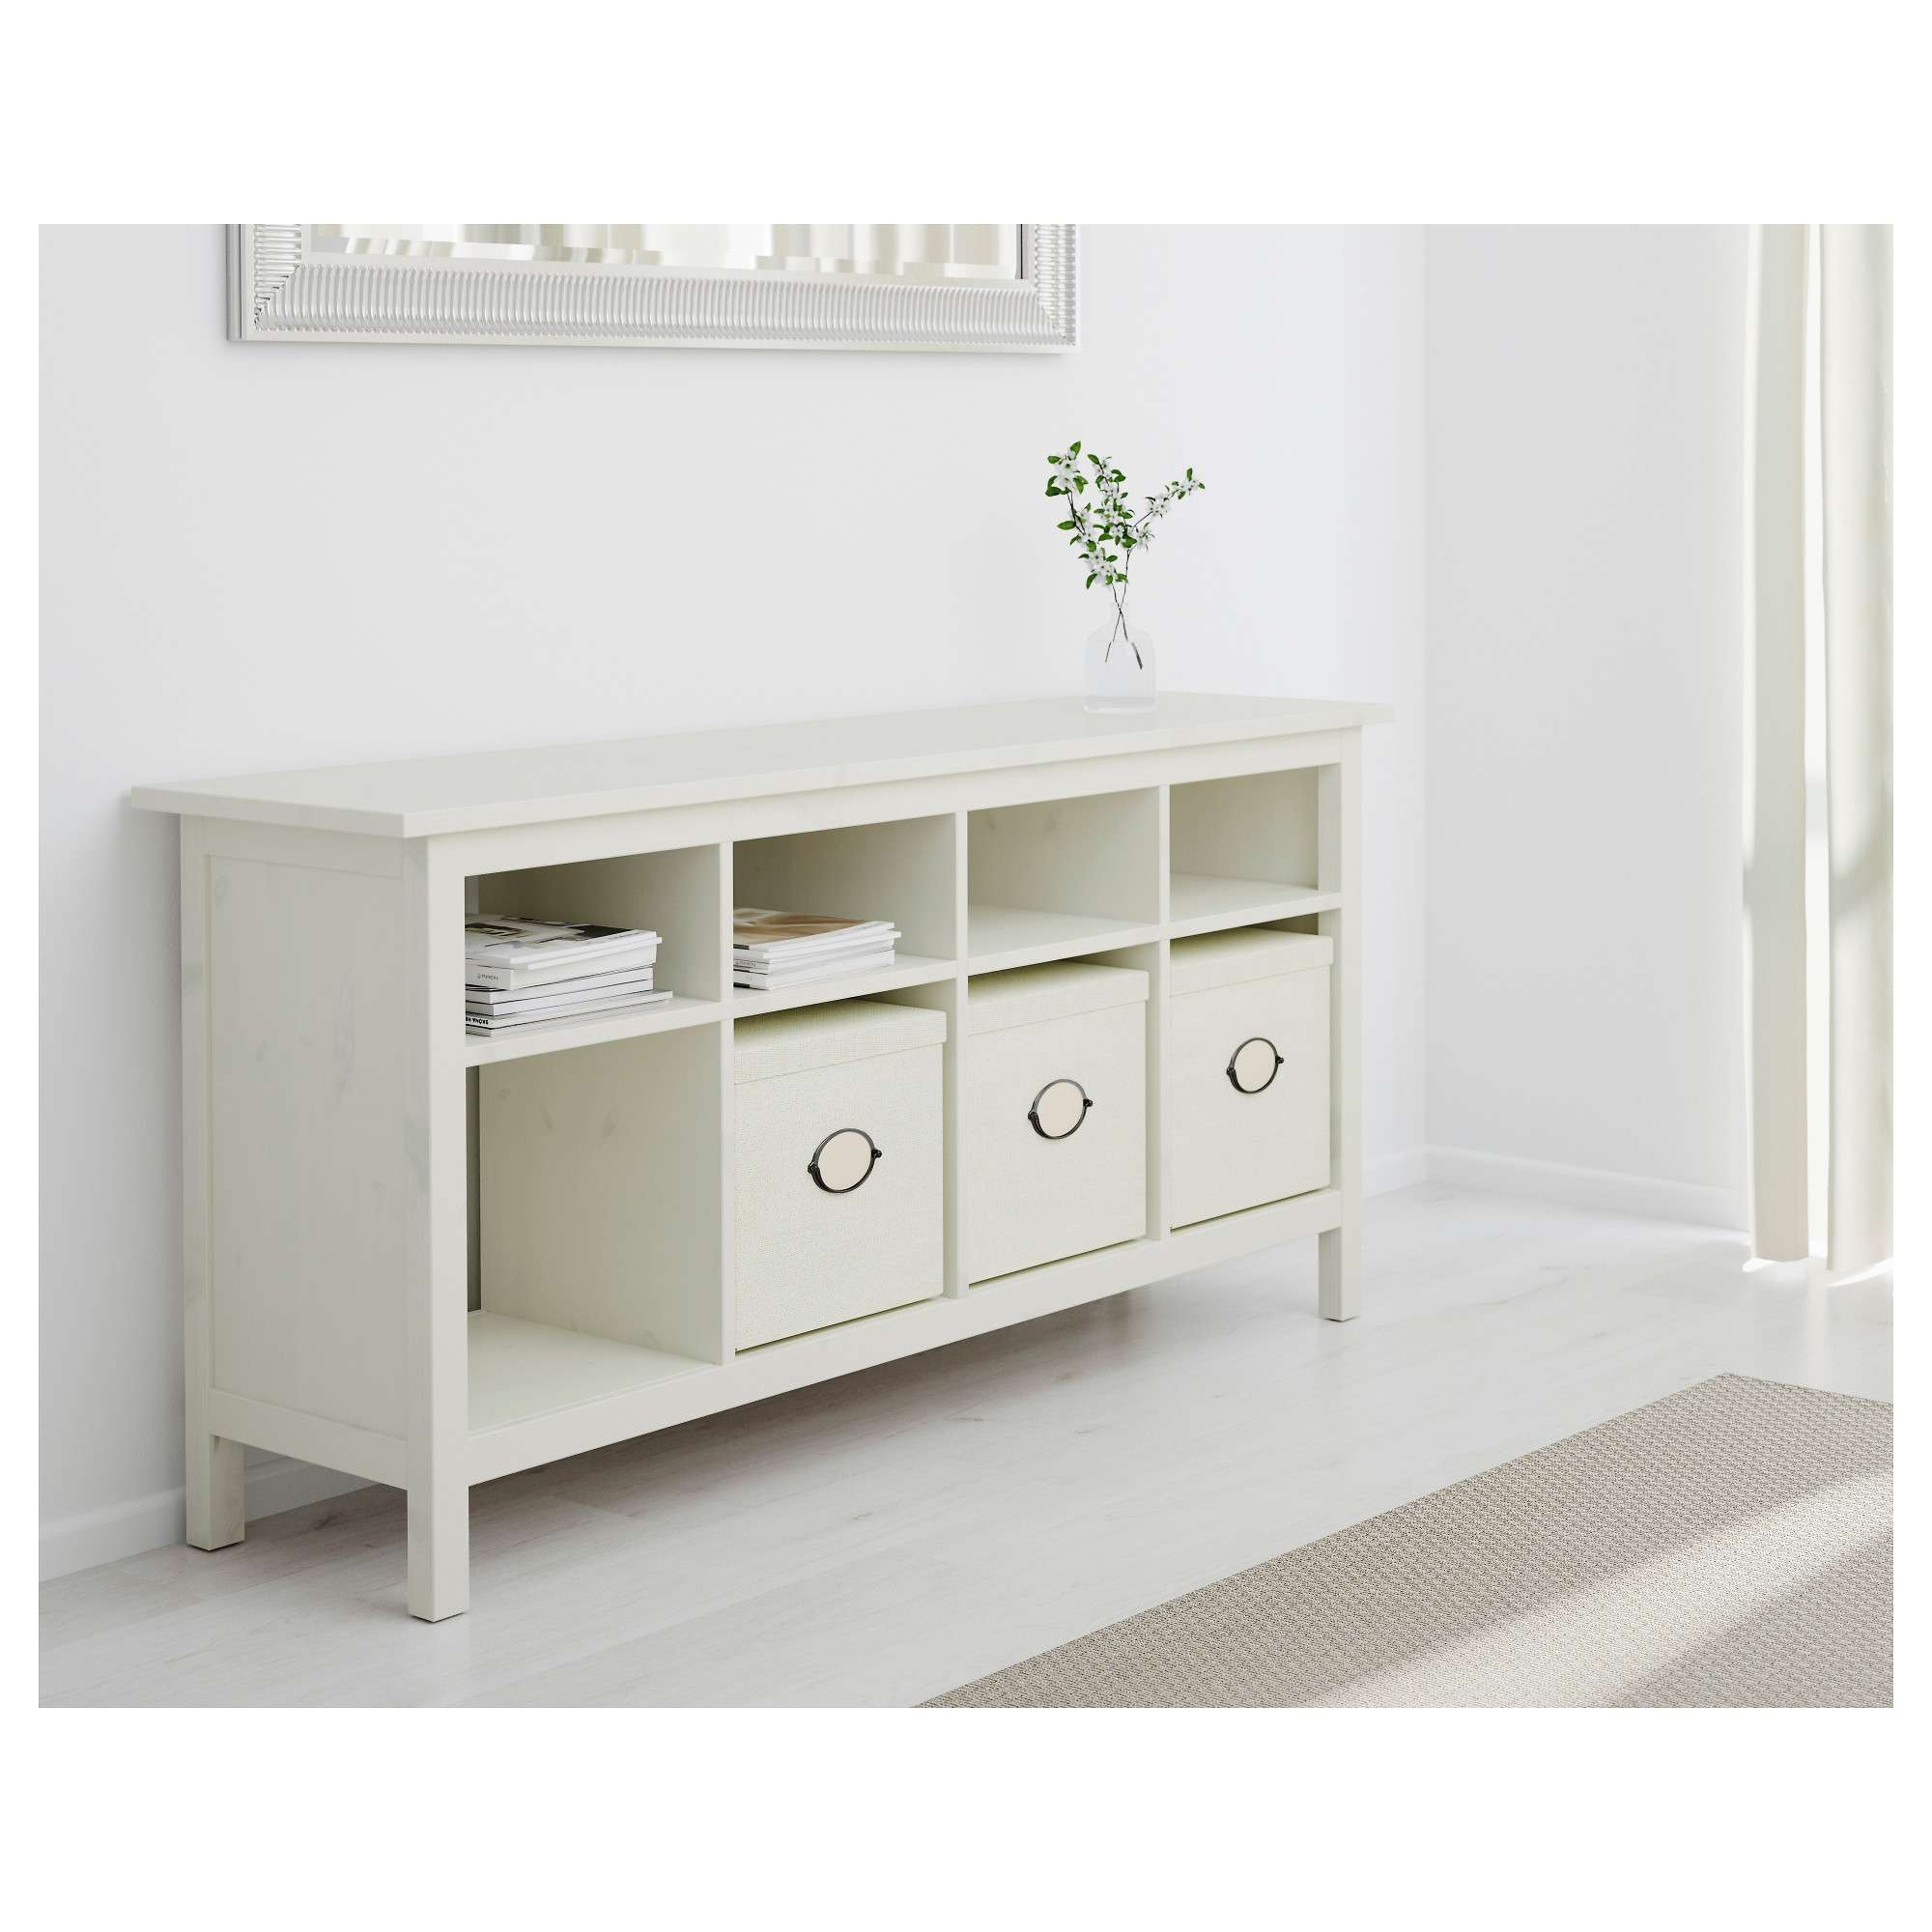 Hemnes Console Table White Stain 157X40 Cm – Ikea For Sideboards Tables (View 8 of 20)